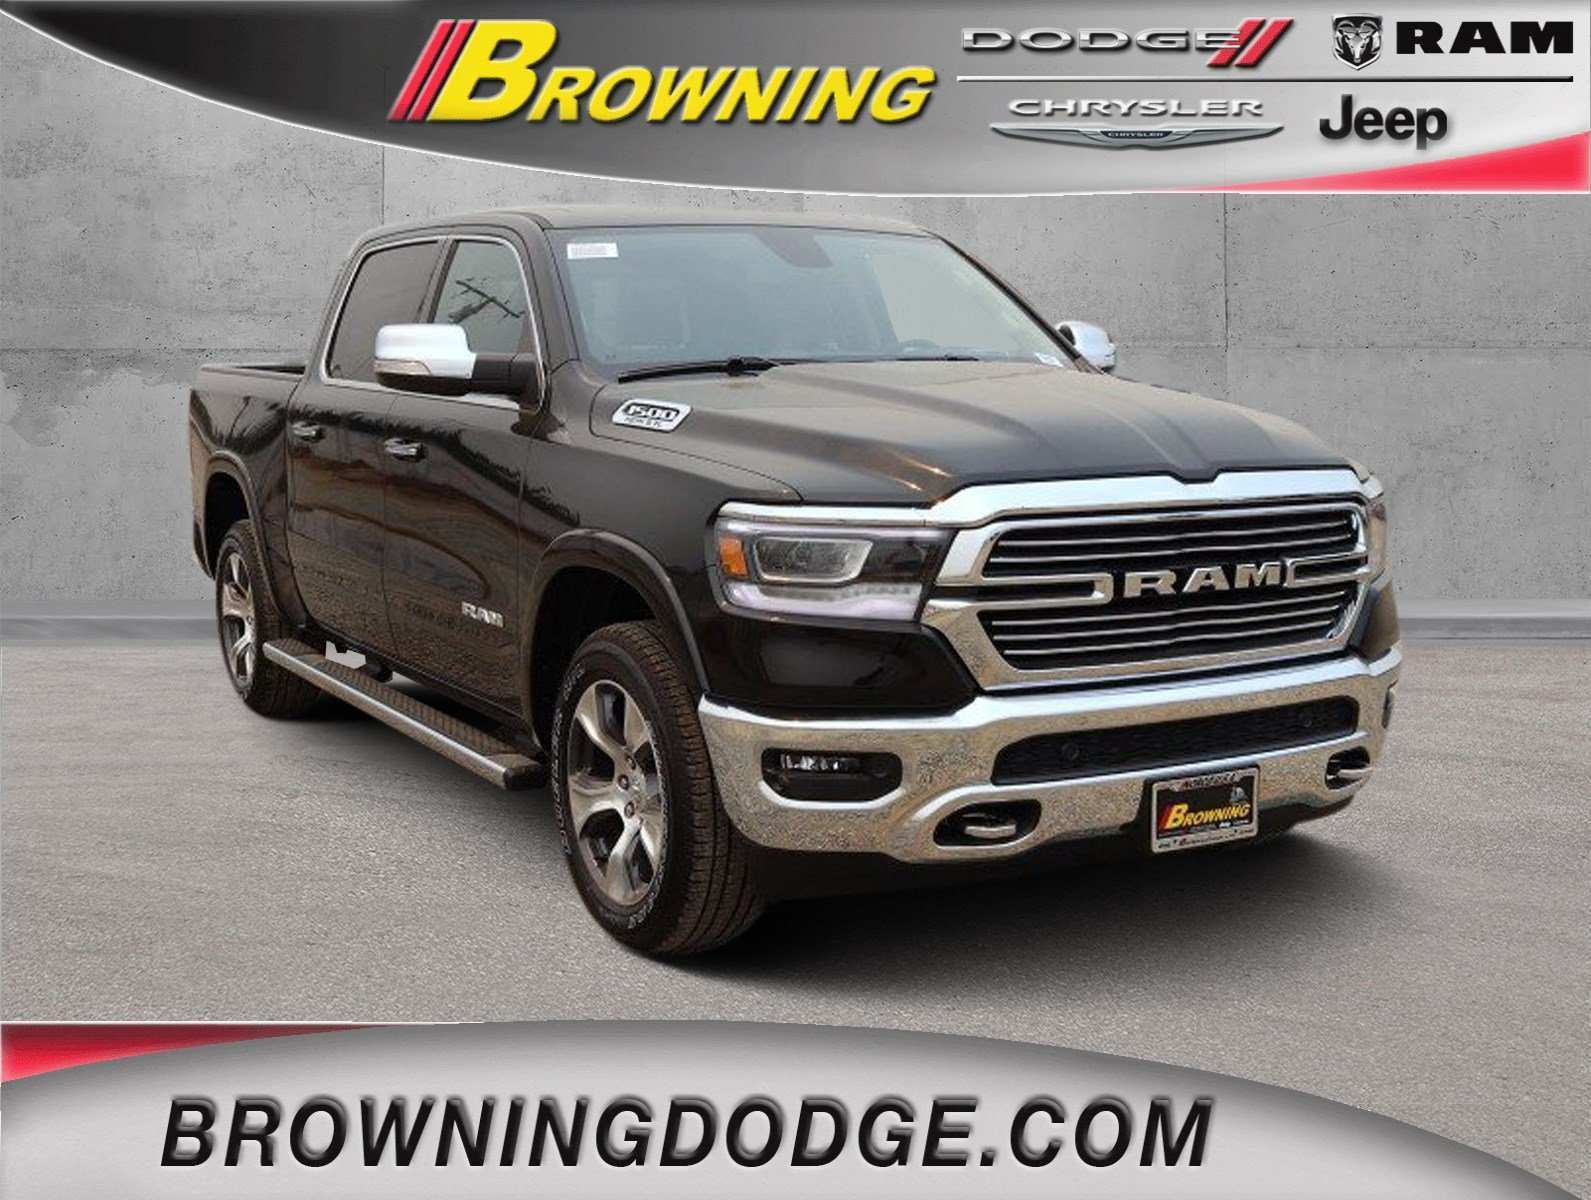 15 Gallery of 2019 Dodge 2500 Mega Cab Exterior and Interior for 2019 Dodge 2500 Mega Cab